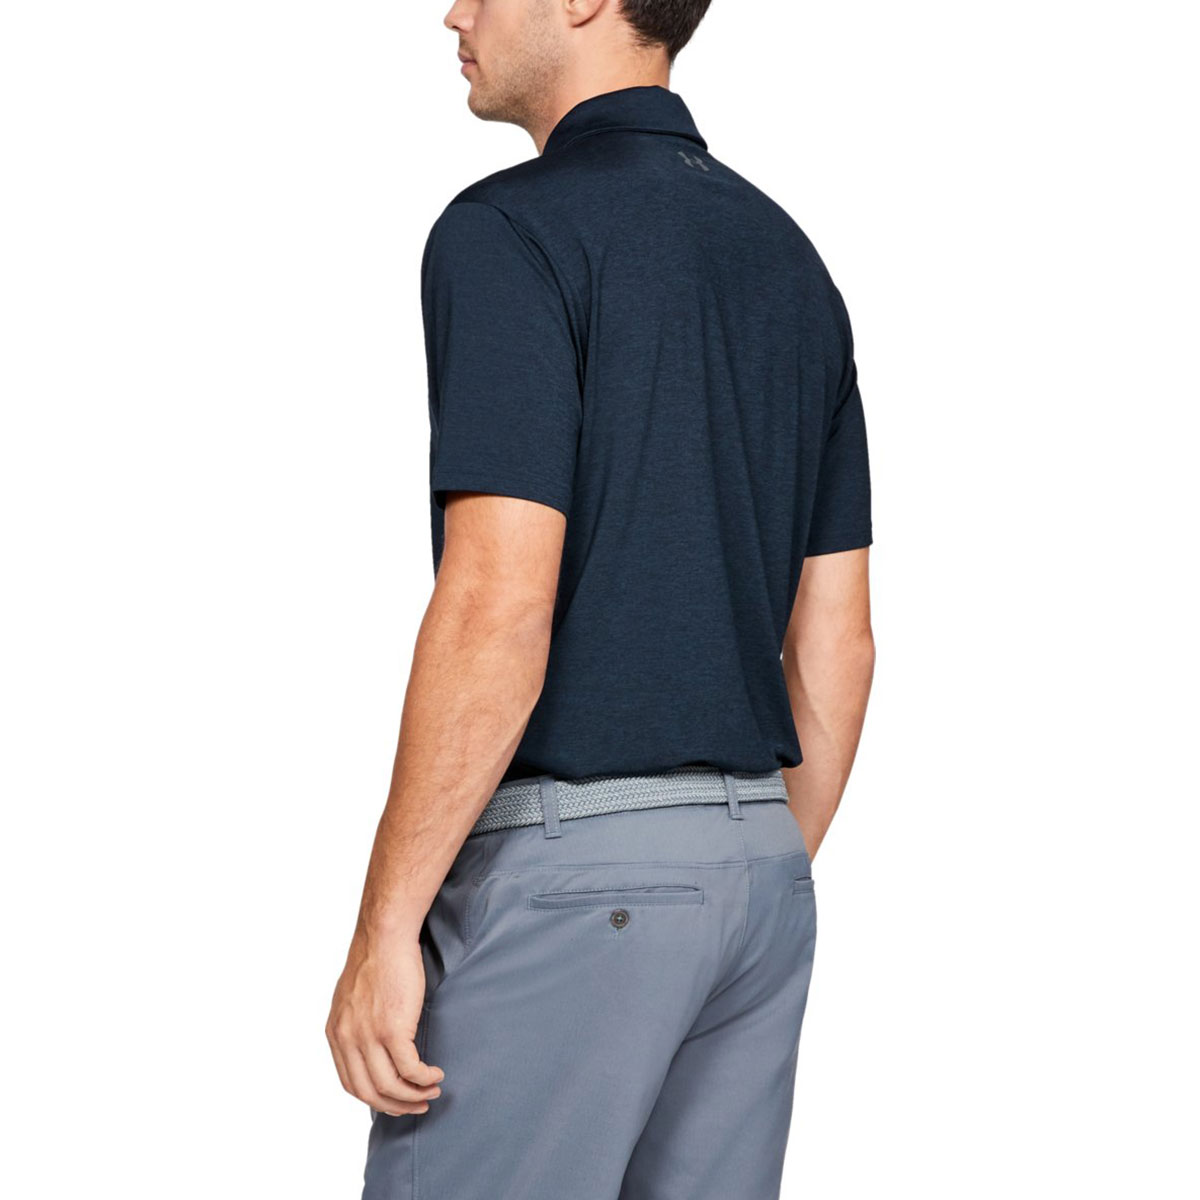 Under-Armour-Mens-2019-Playoff-Polo-2-0-Breathable-Light-Stretch-Polo-Shirt thumbnail 7